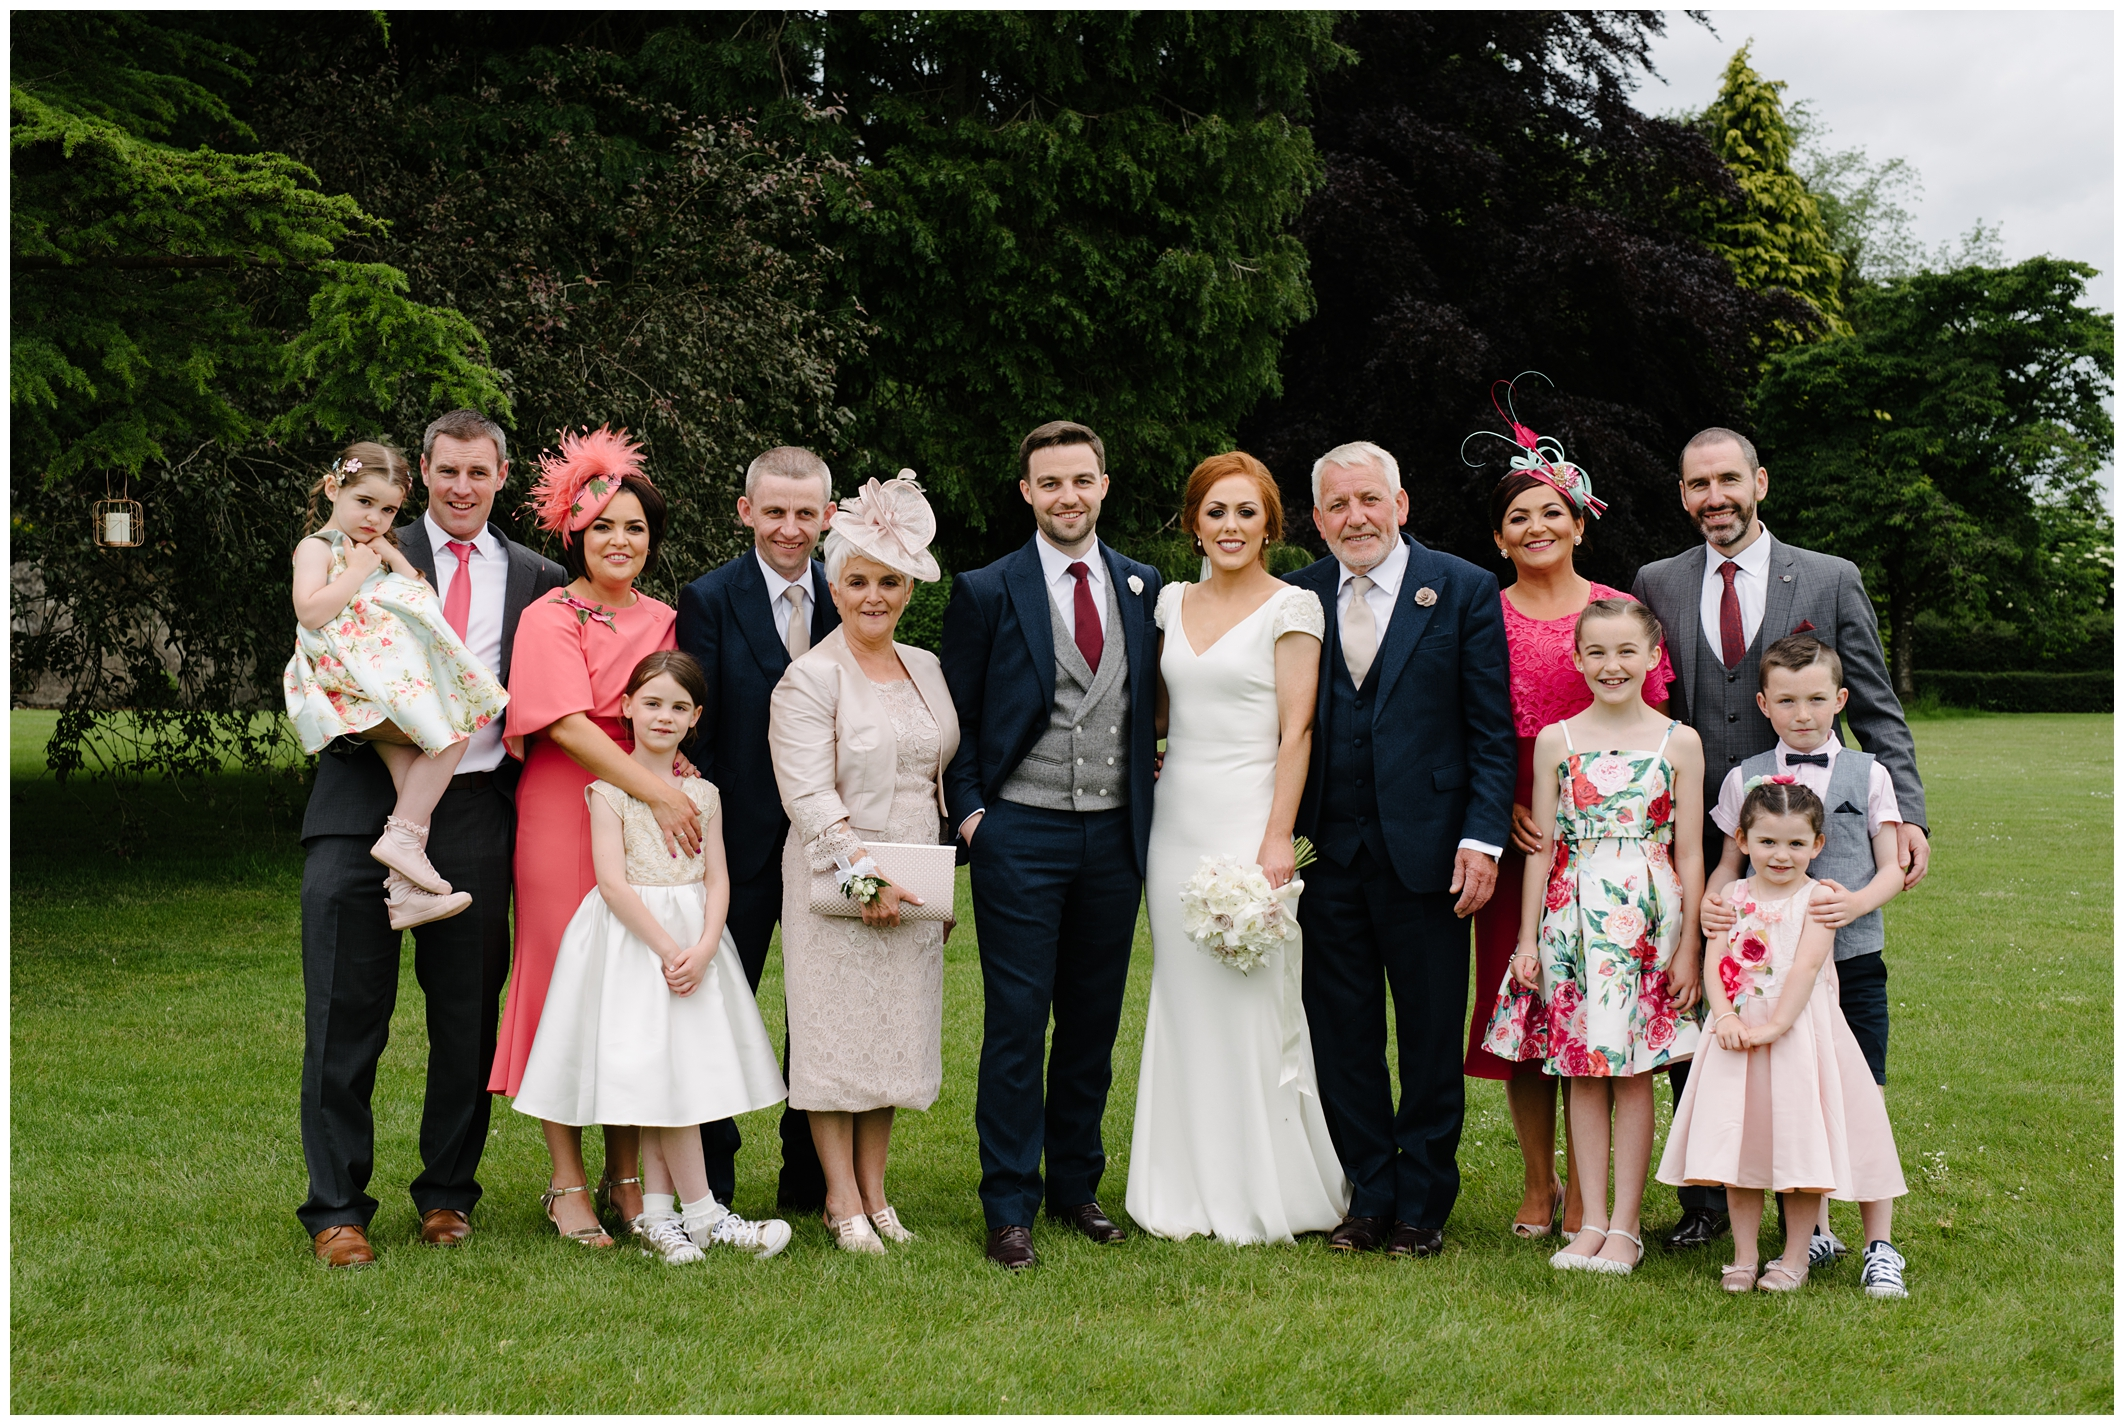 sinead_emmet_farnham_estate_wedding_jude_browne_photography_0137.jpg